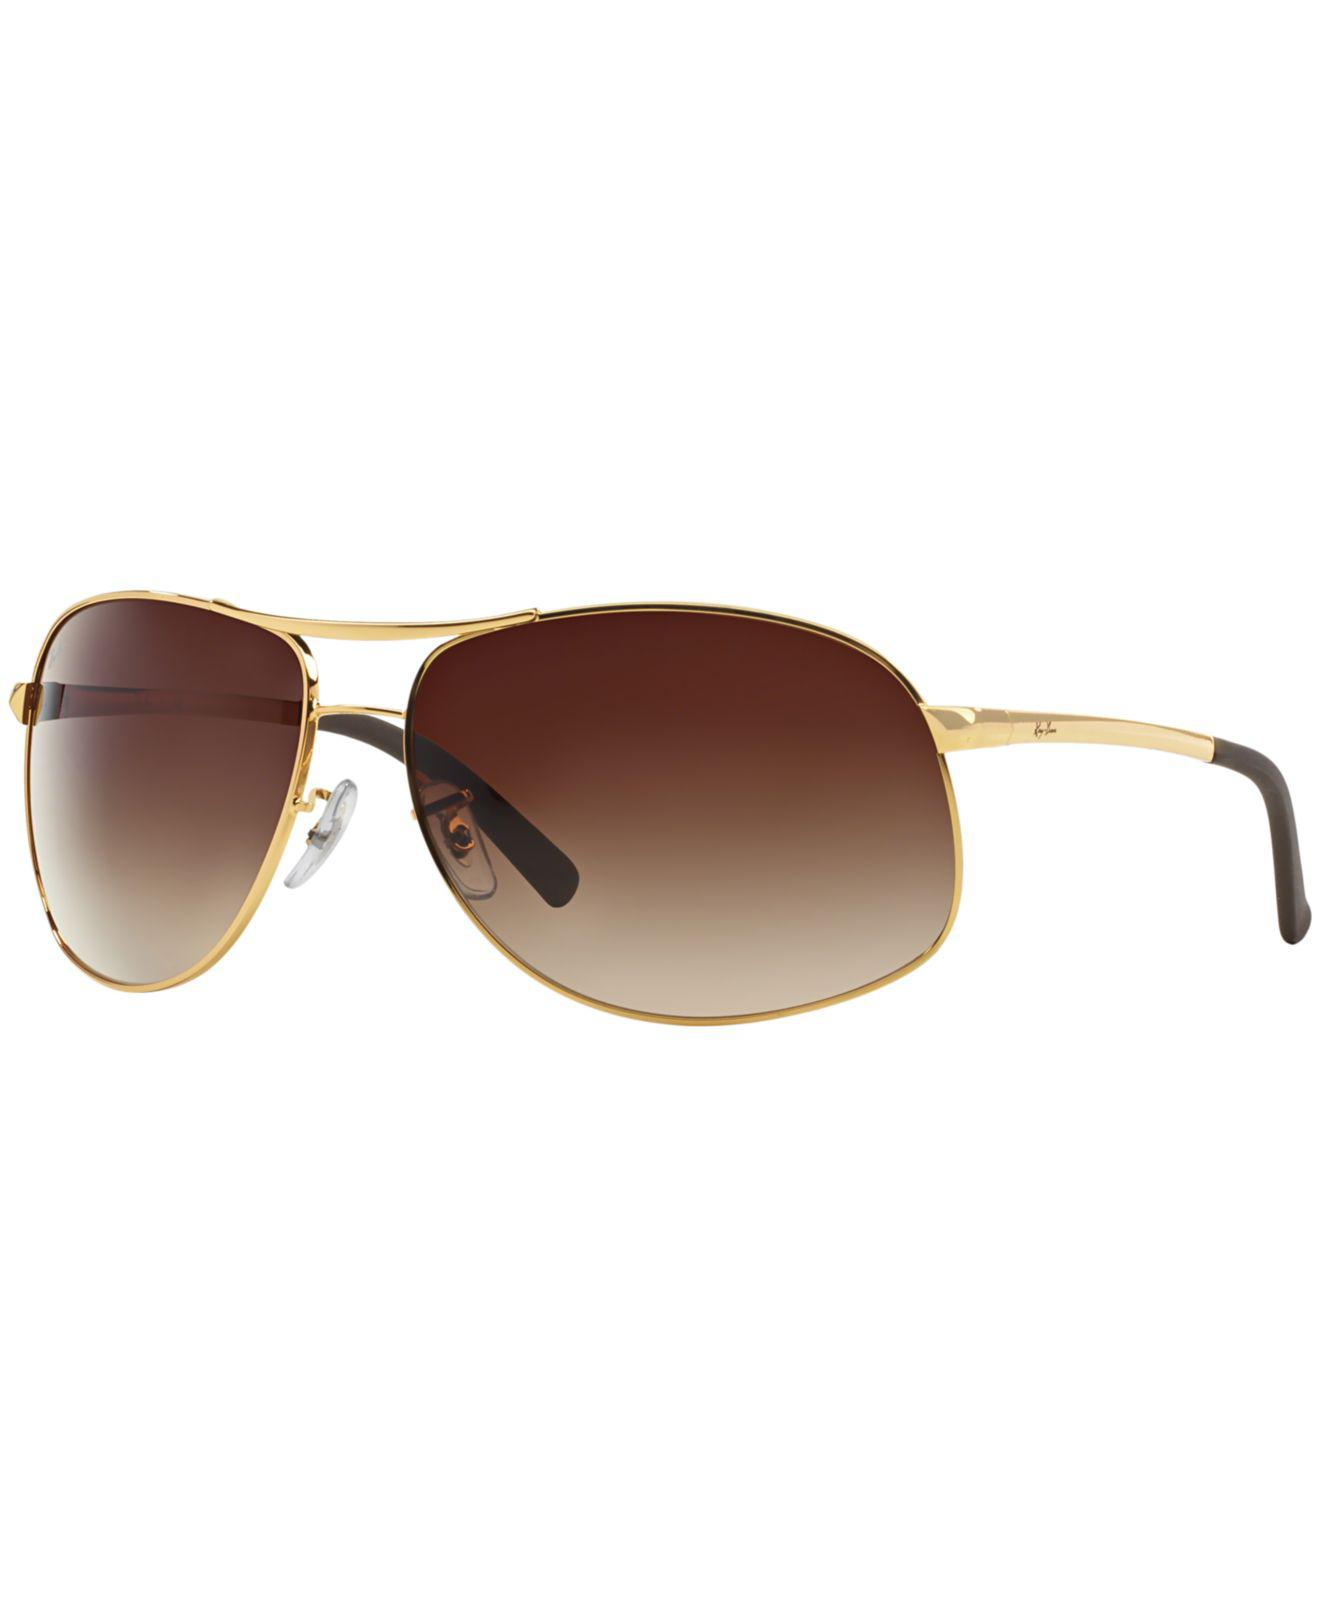 ec1bf15950a Lyst - Ray-Ban Rb3387 64 in Metallic